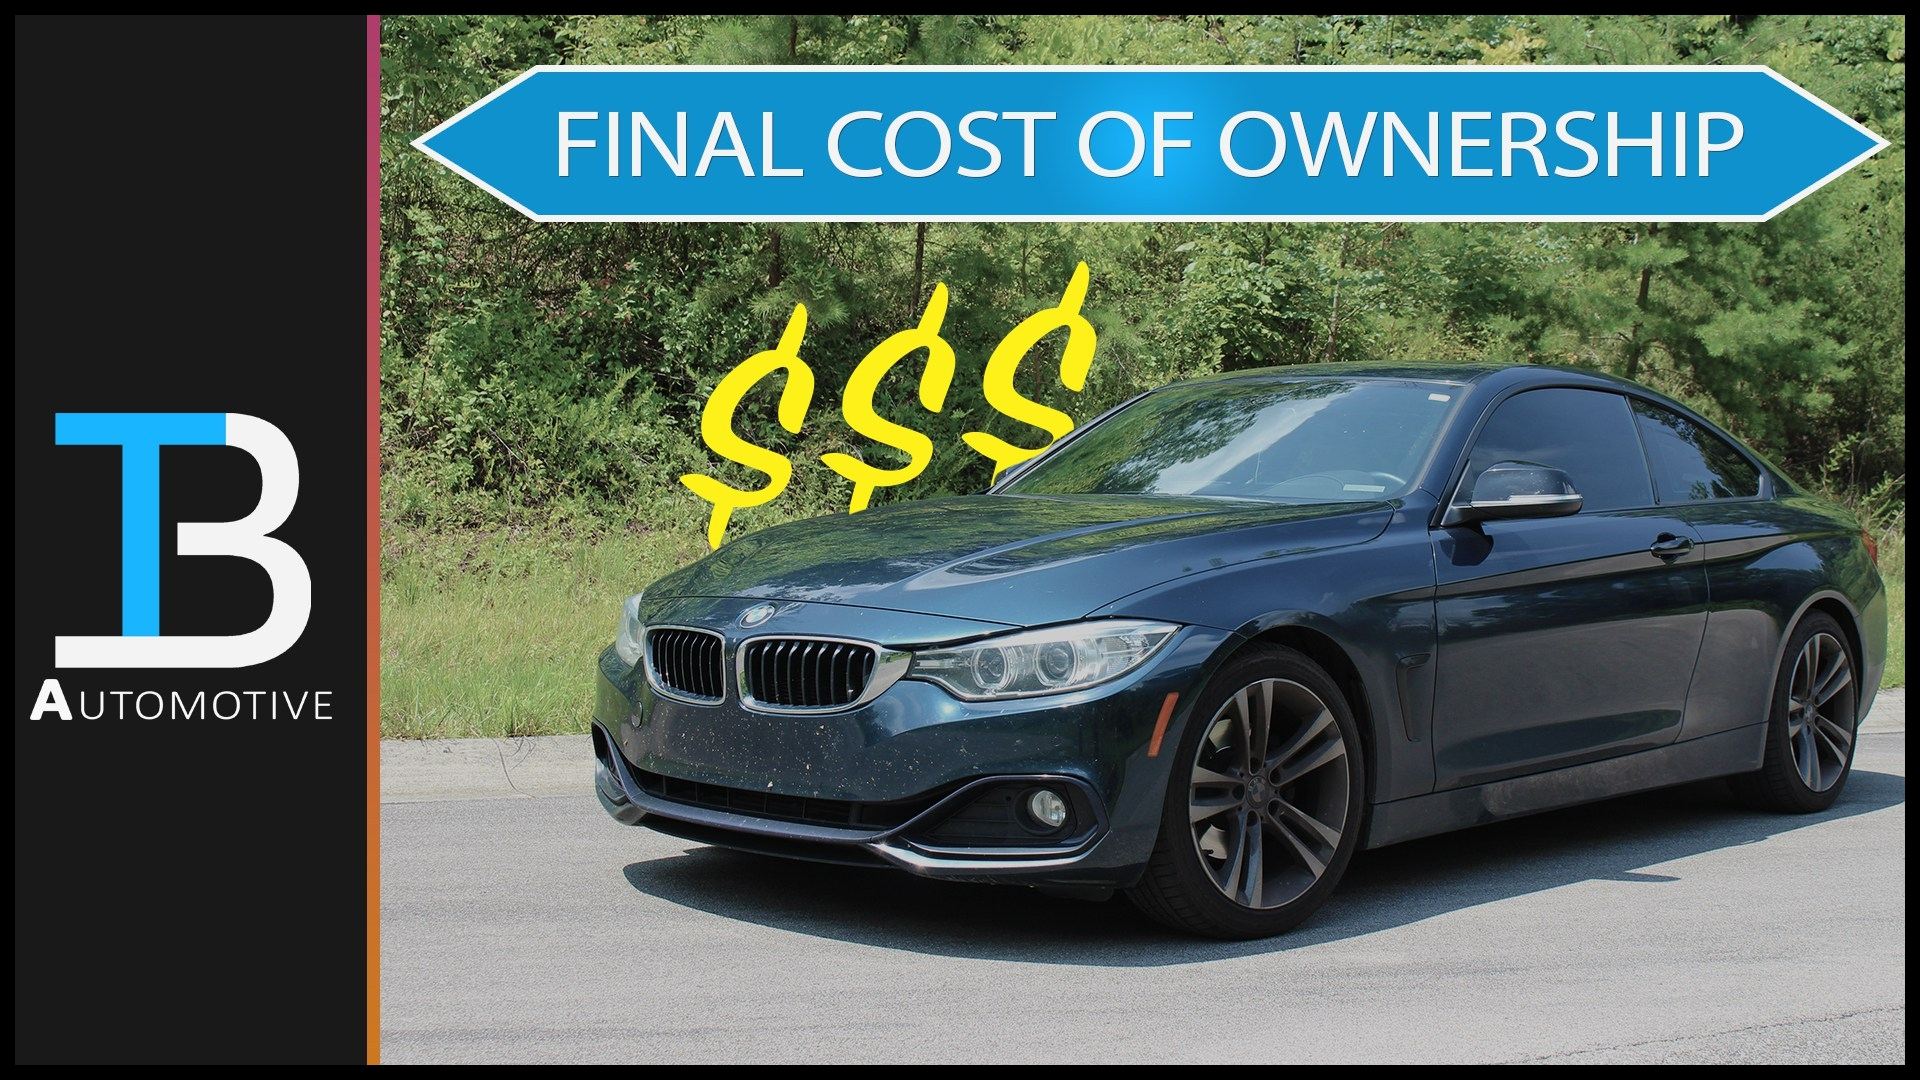 Here s How Much It Costs to Own the 2014 BMW 428i for 18 Months & 60k Miles